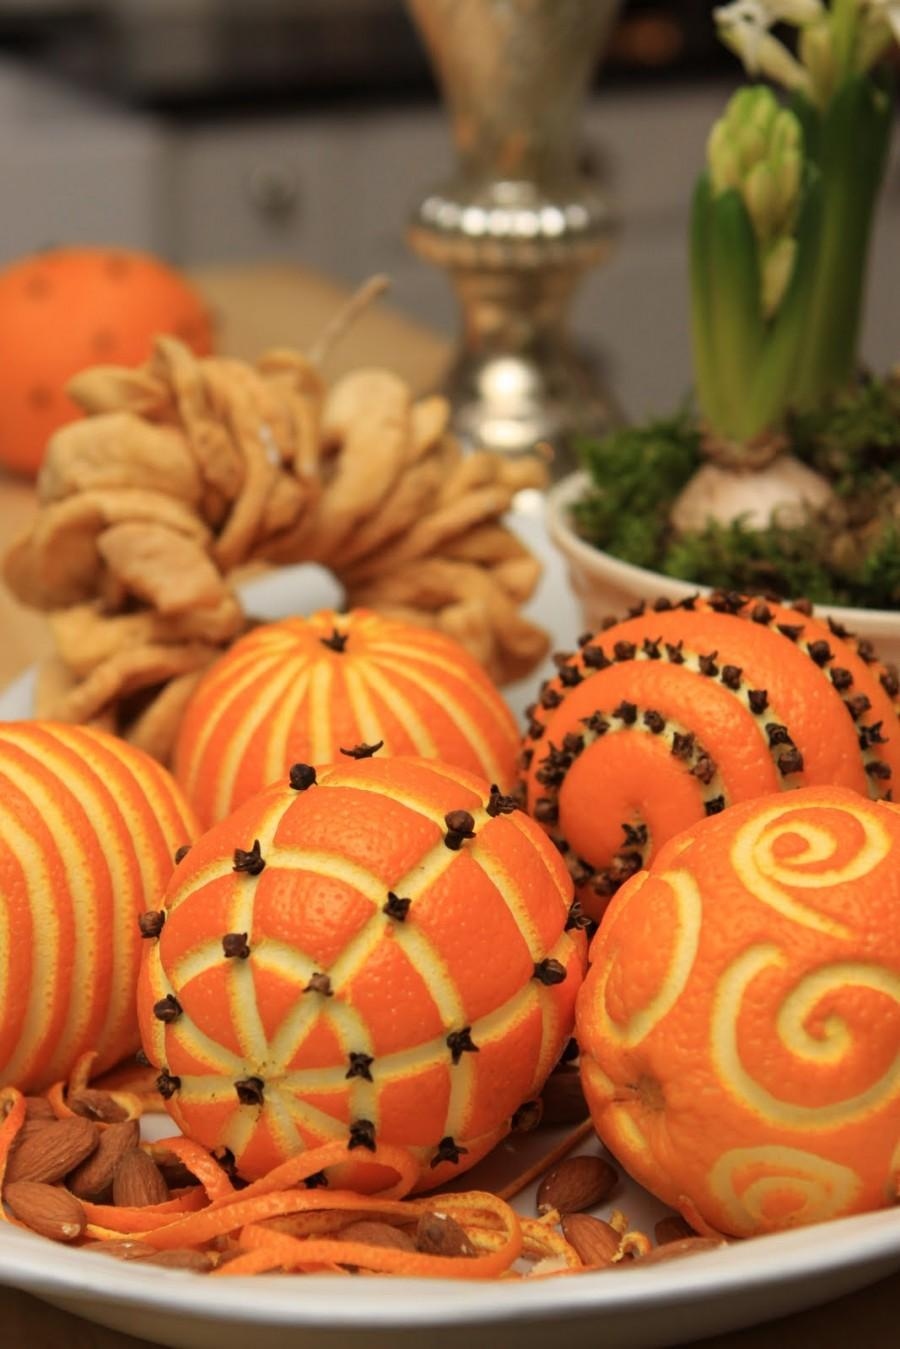 Oranges in a bowl carved with swirls and geometric patterns